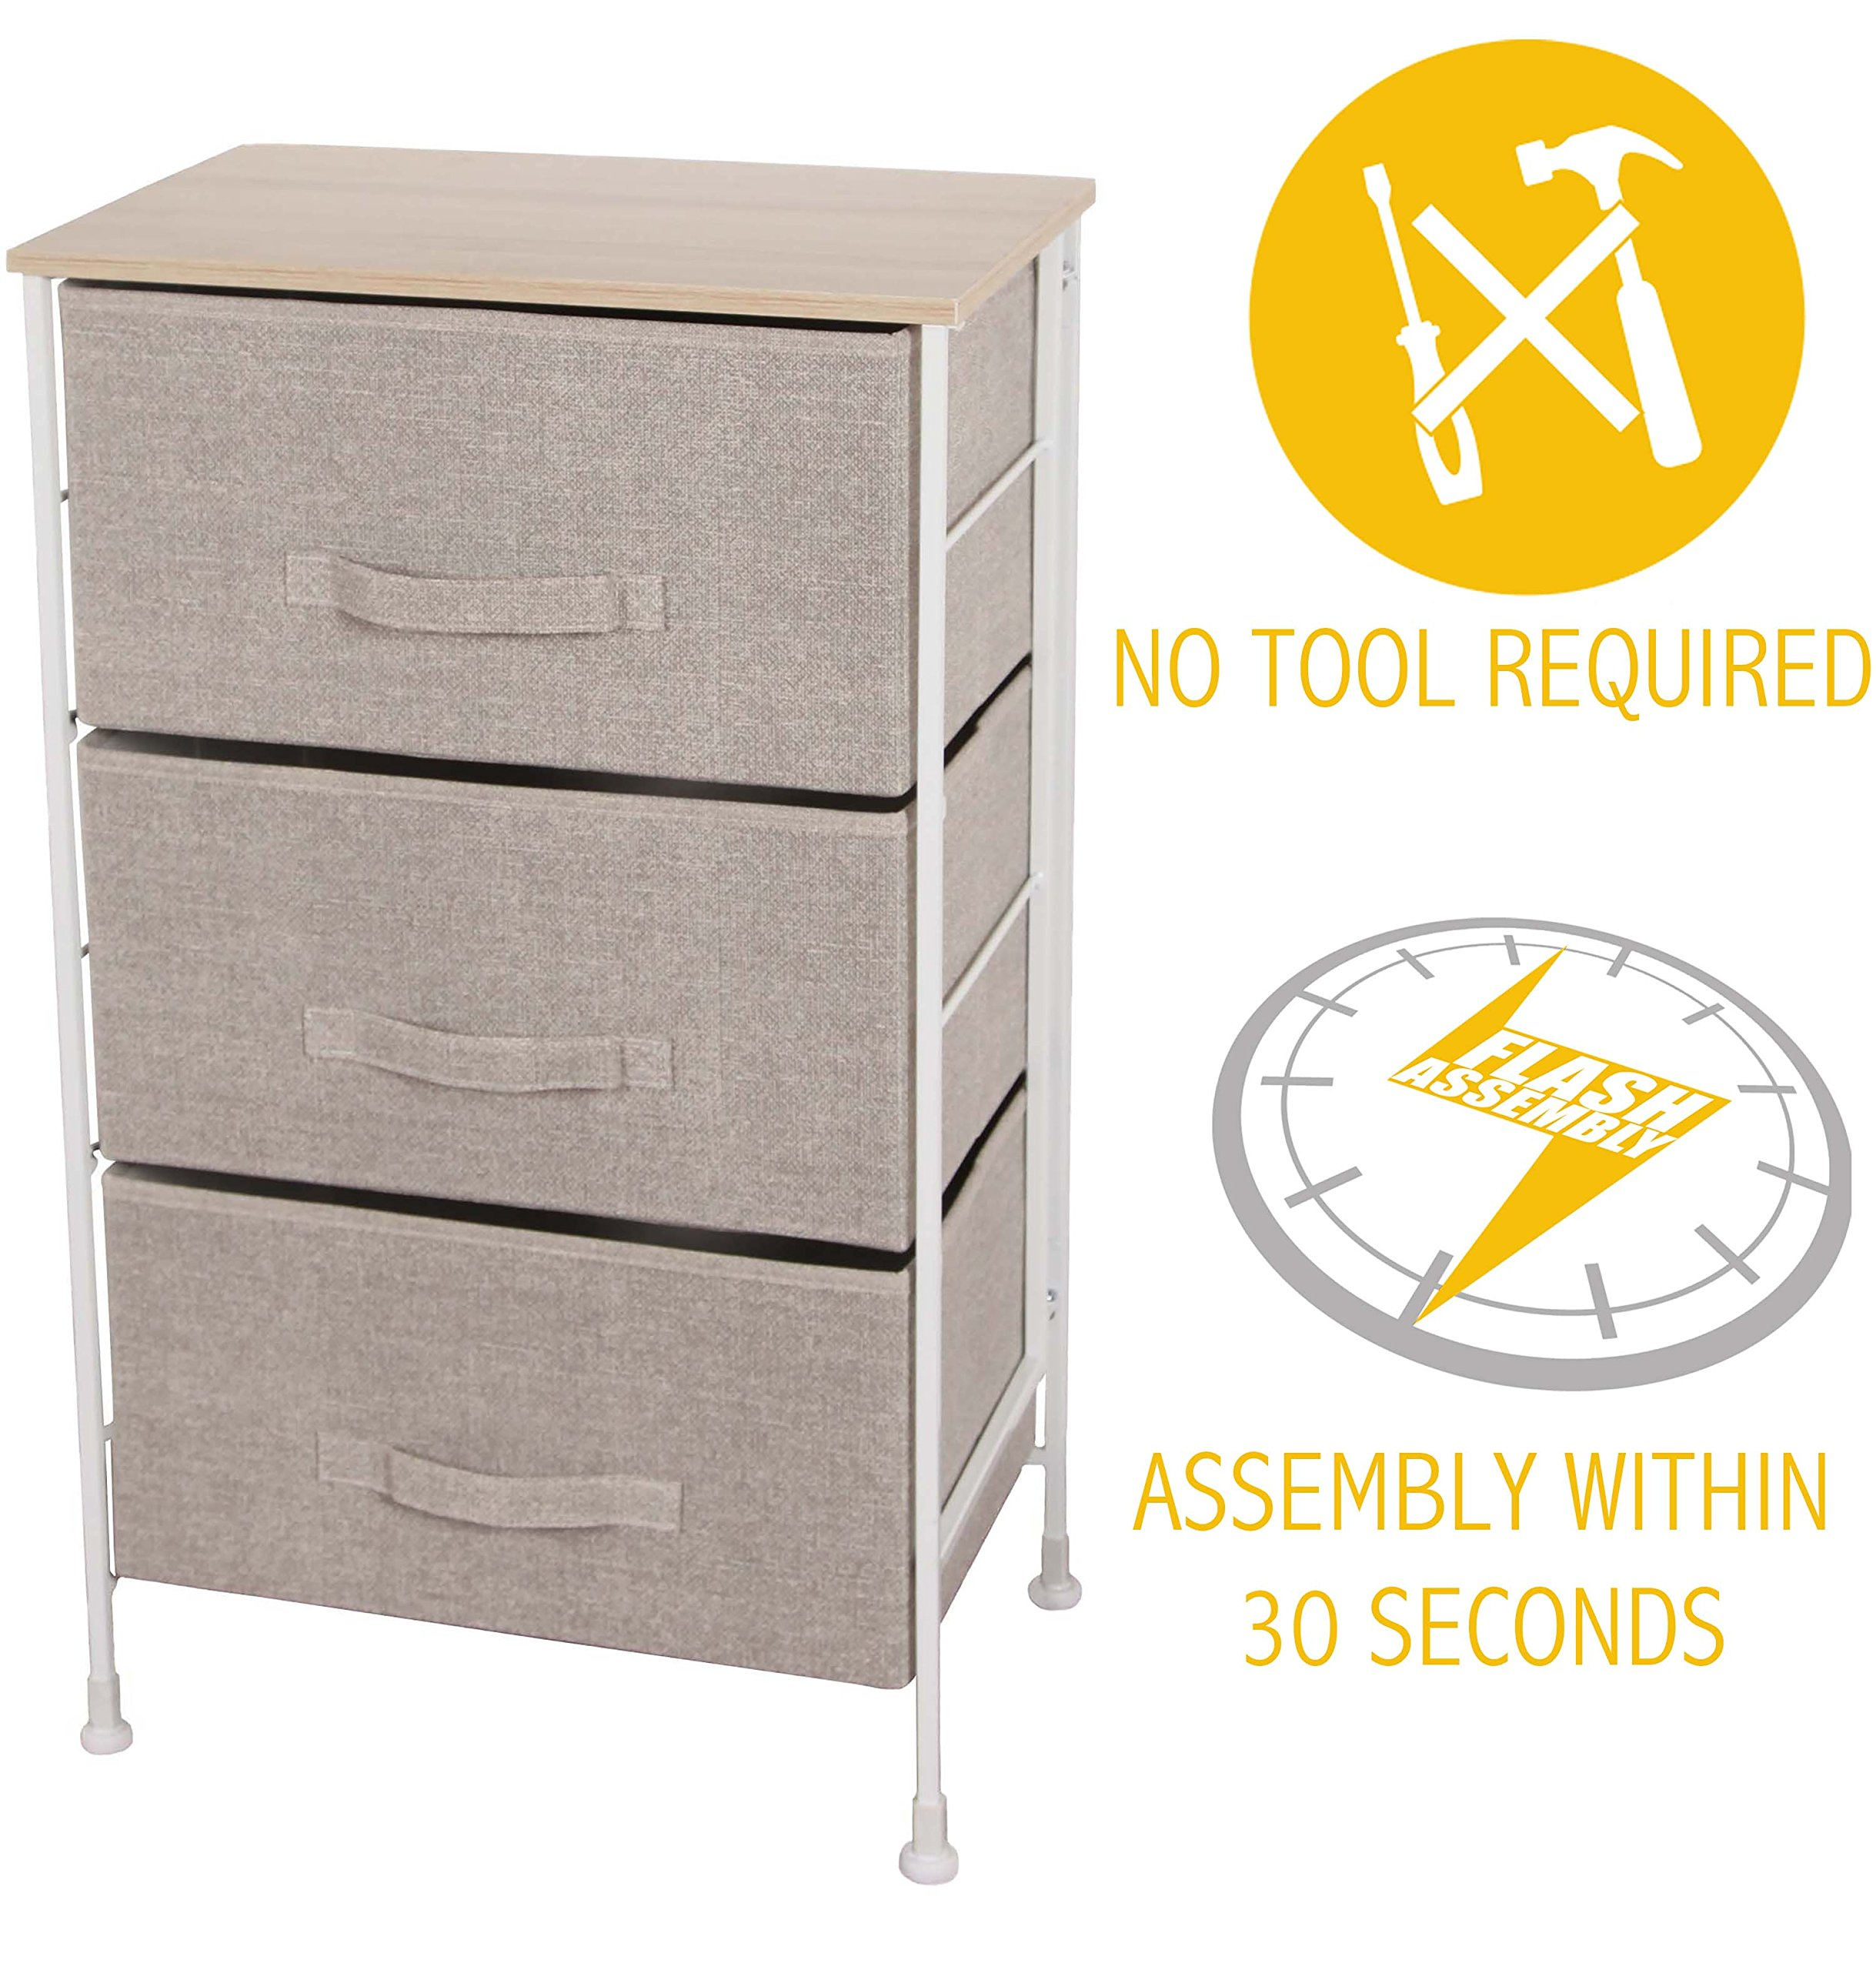 iTIDY Drawer Chest-3 Drawer Storage Chest,Dresser,Drawer Organizer Unit,Multi-Purpose Storage Cabinet With Removable Fabric Drawers,Beige